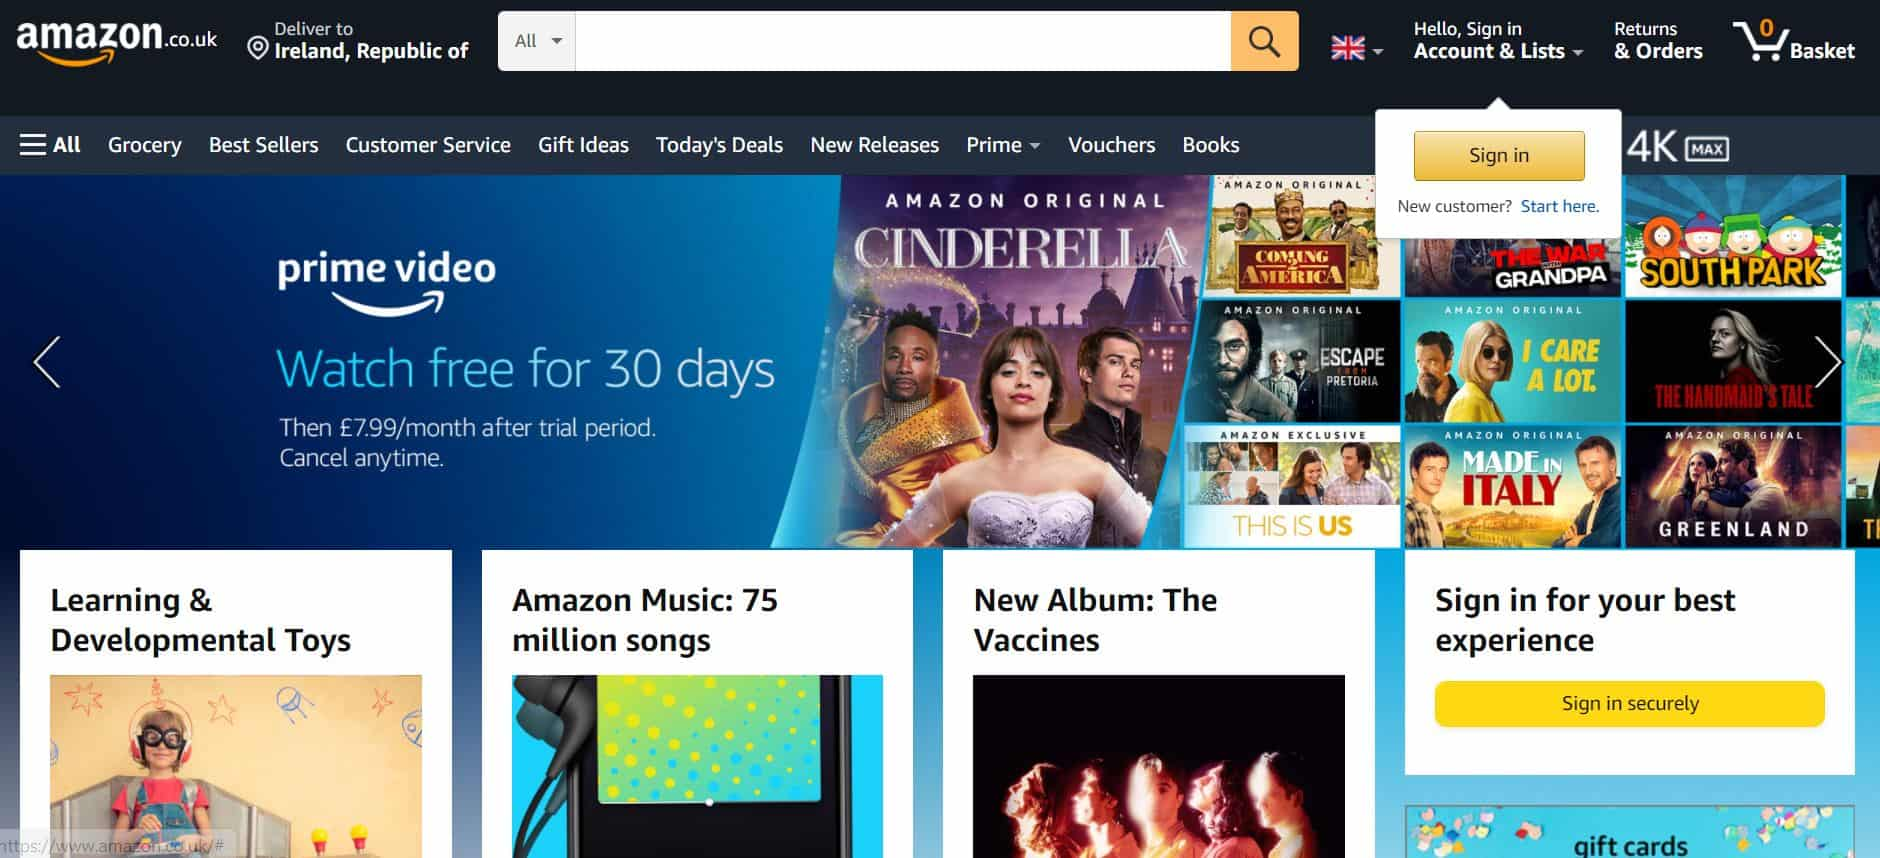 Displaying Amazon's home page so that readers understand what it sells.